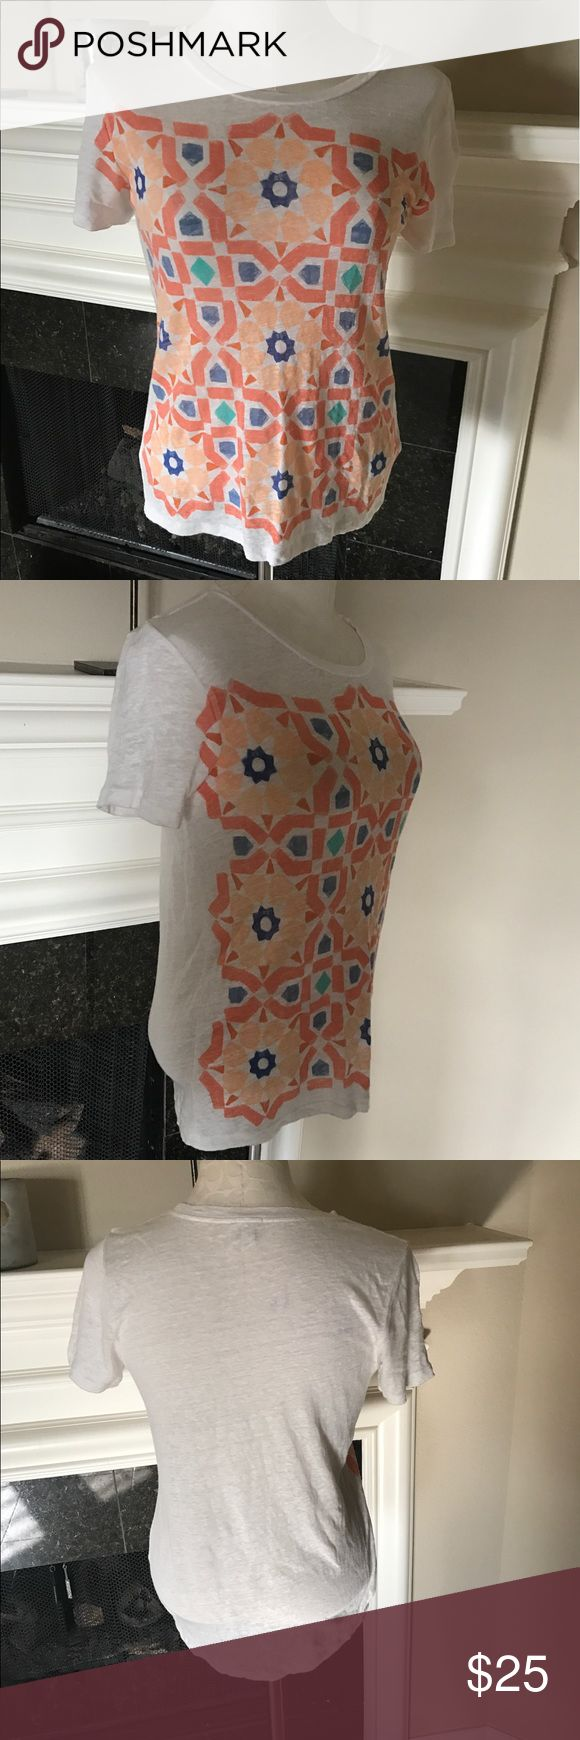 """J Crew Linen Moroccan Tile Tee J Crew short sleeved tee with light colored printed pattern. EUC. Loose fit , body length 25"""". Stock photos from J.Crew Website J. Crew Tops"""